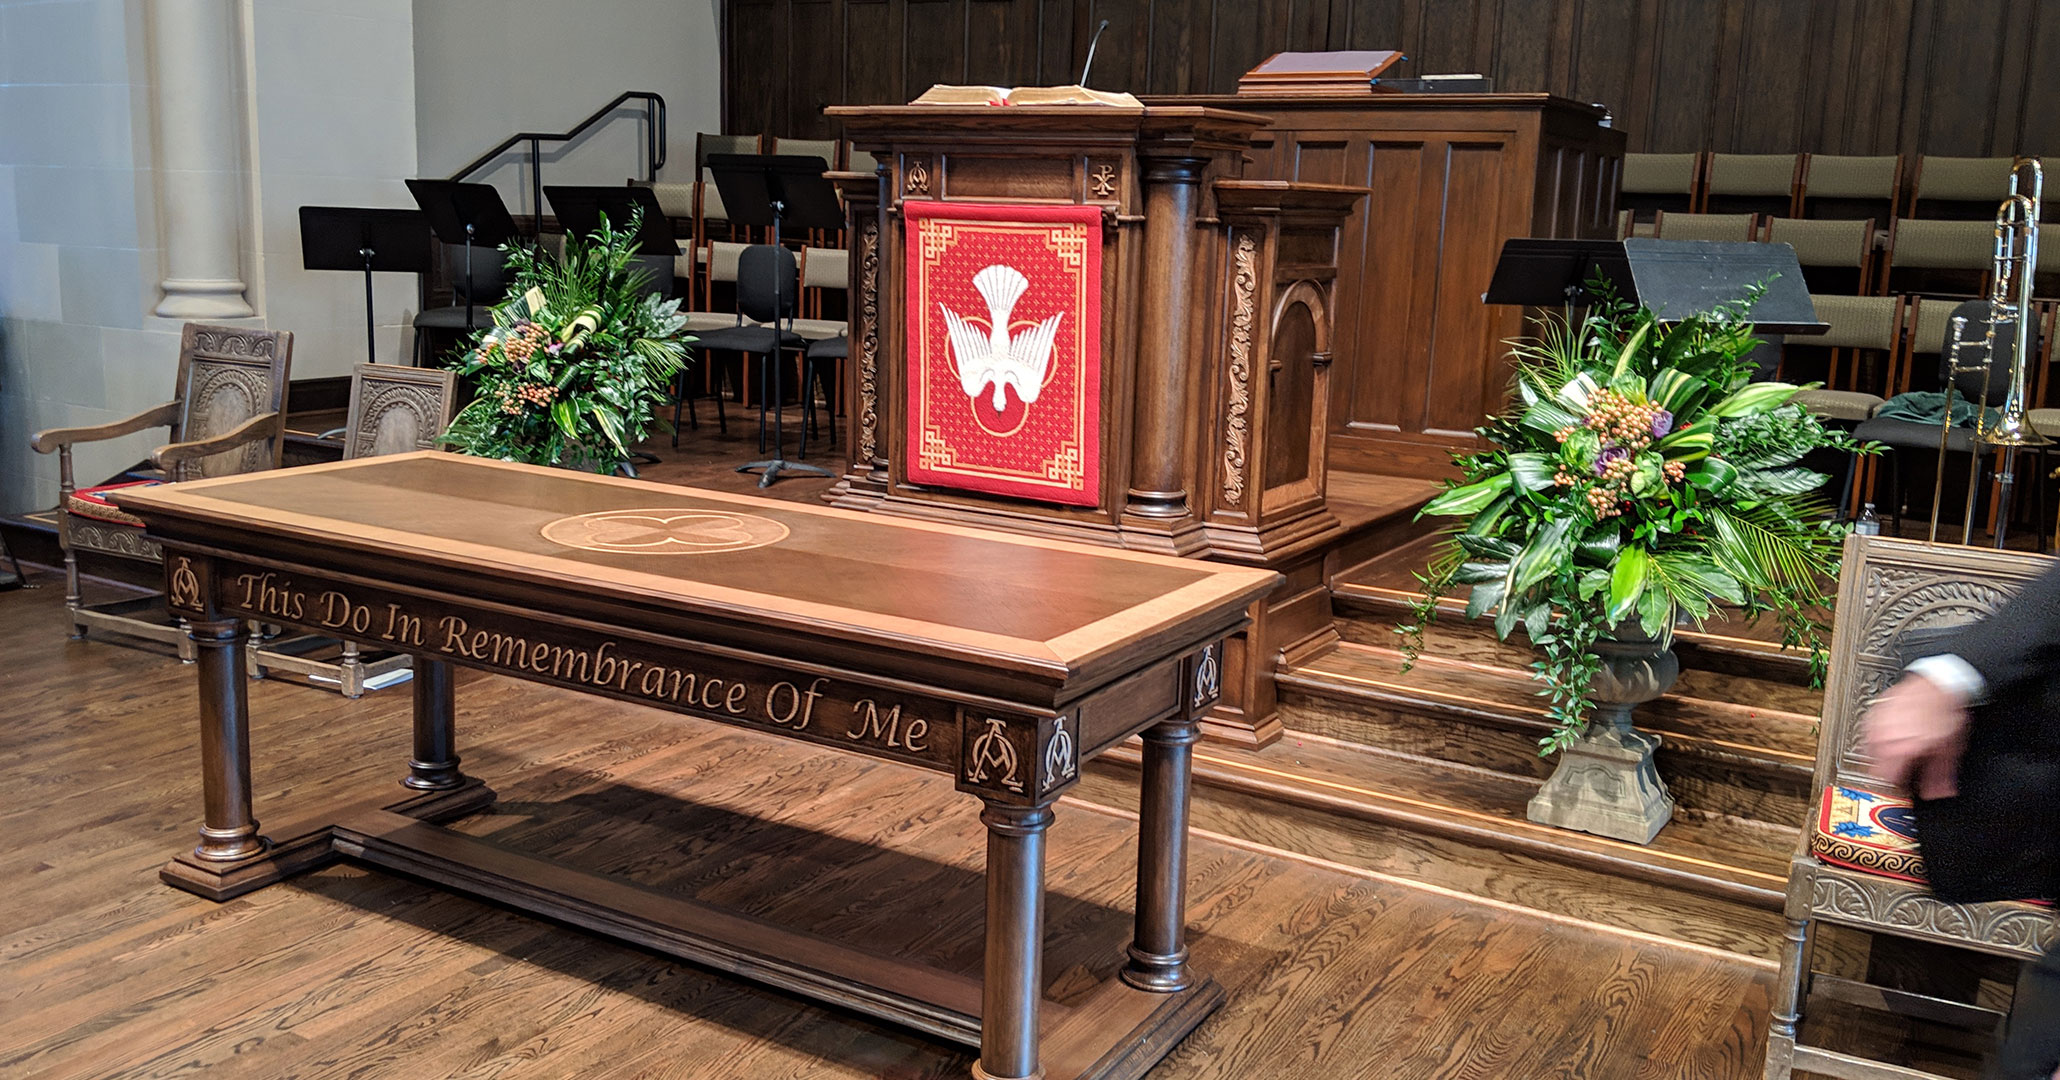 Historic Preservationists and Interior Designers at Boudreaux worked with First Presbyterian Church in Spartanburg, SC to customize the alter design.